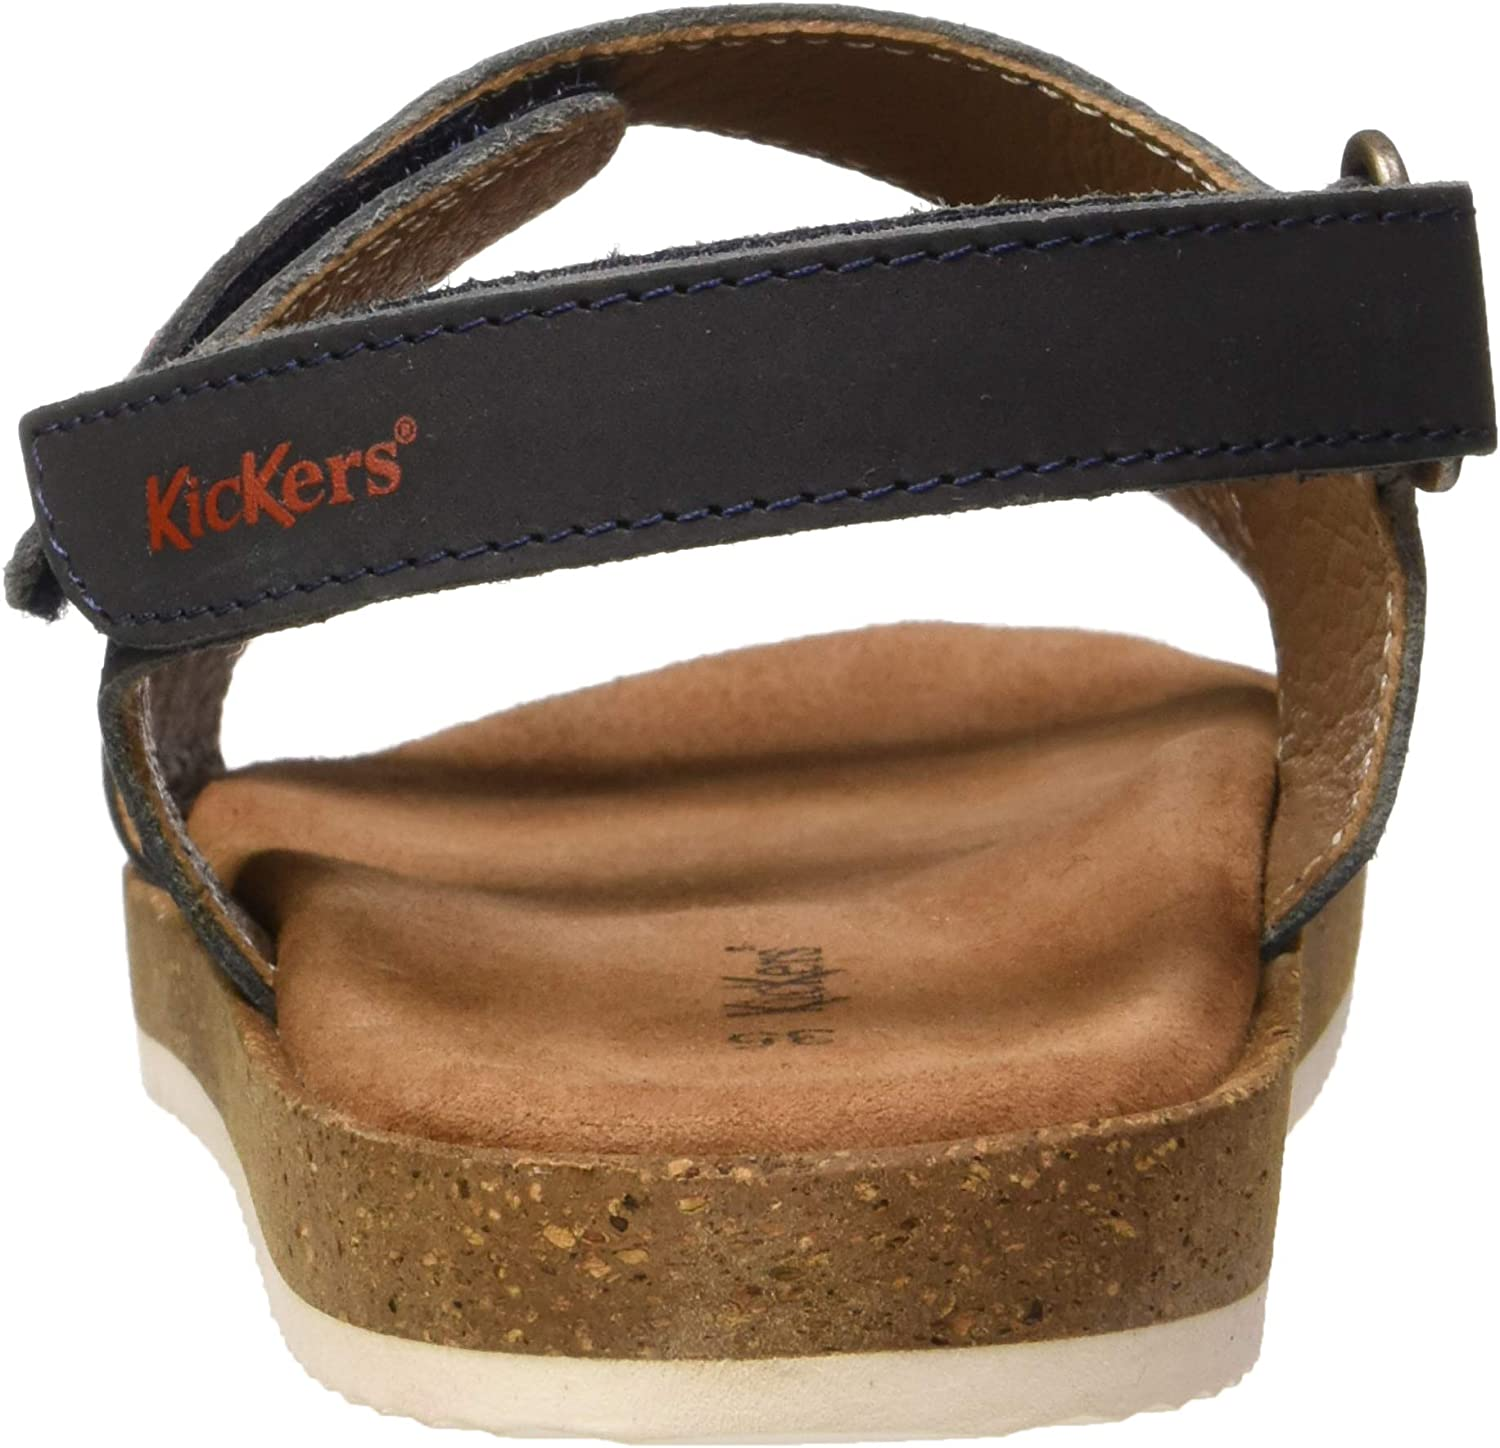 Kickers Mens First Open Toe Sandals